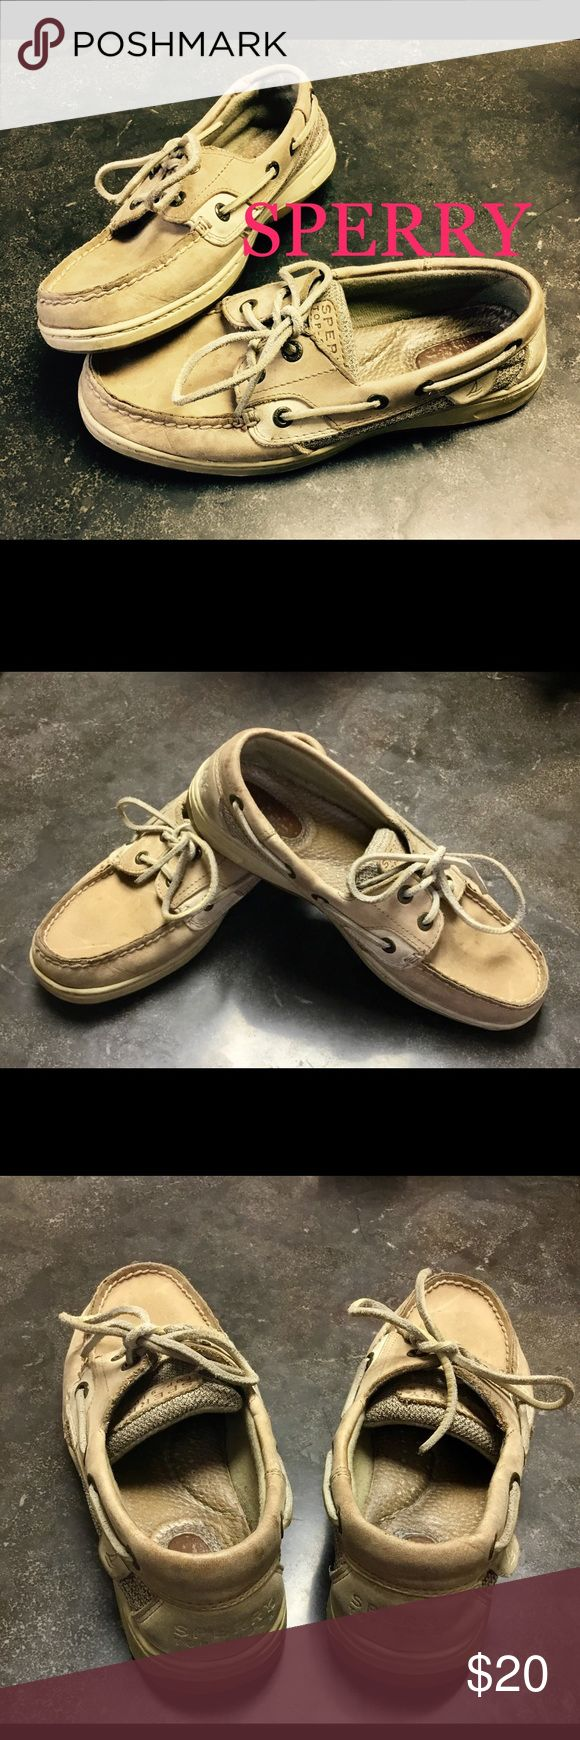 Sperry Boat Shoes SZ 6.5 Sperry Boat Shoes Size 6.5. In good condition, (Wear pictured), tons of life left to give. Perfect for work, school, Casual, or grab & go.Please feel free to check out my other items and I offer bundle pricing! #Discount #Bundle #Cheap #Gift #Deal #Gift #Kotas Will offer free card and wrapping, if sent as gift! Please include occasion and special message. Sperry Shoes Flats & Loafers